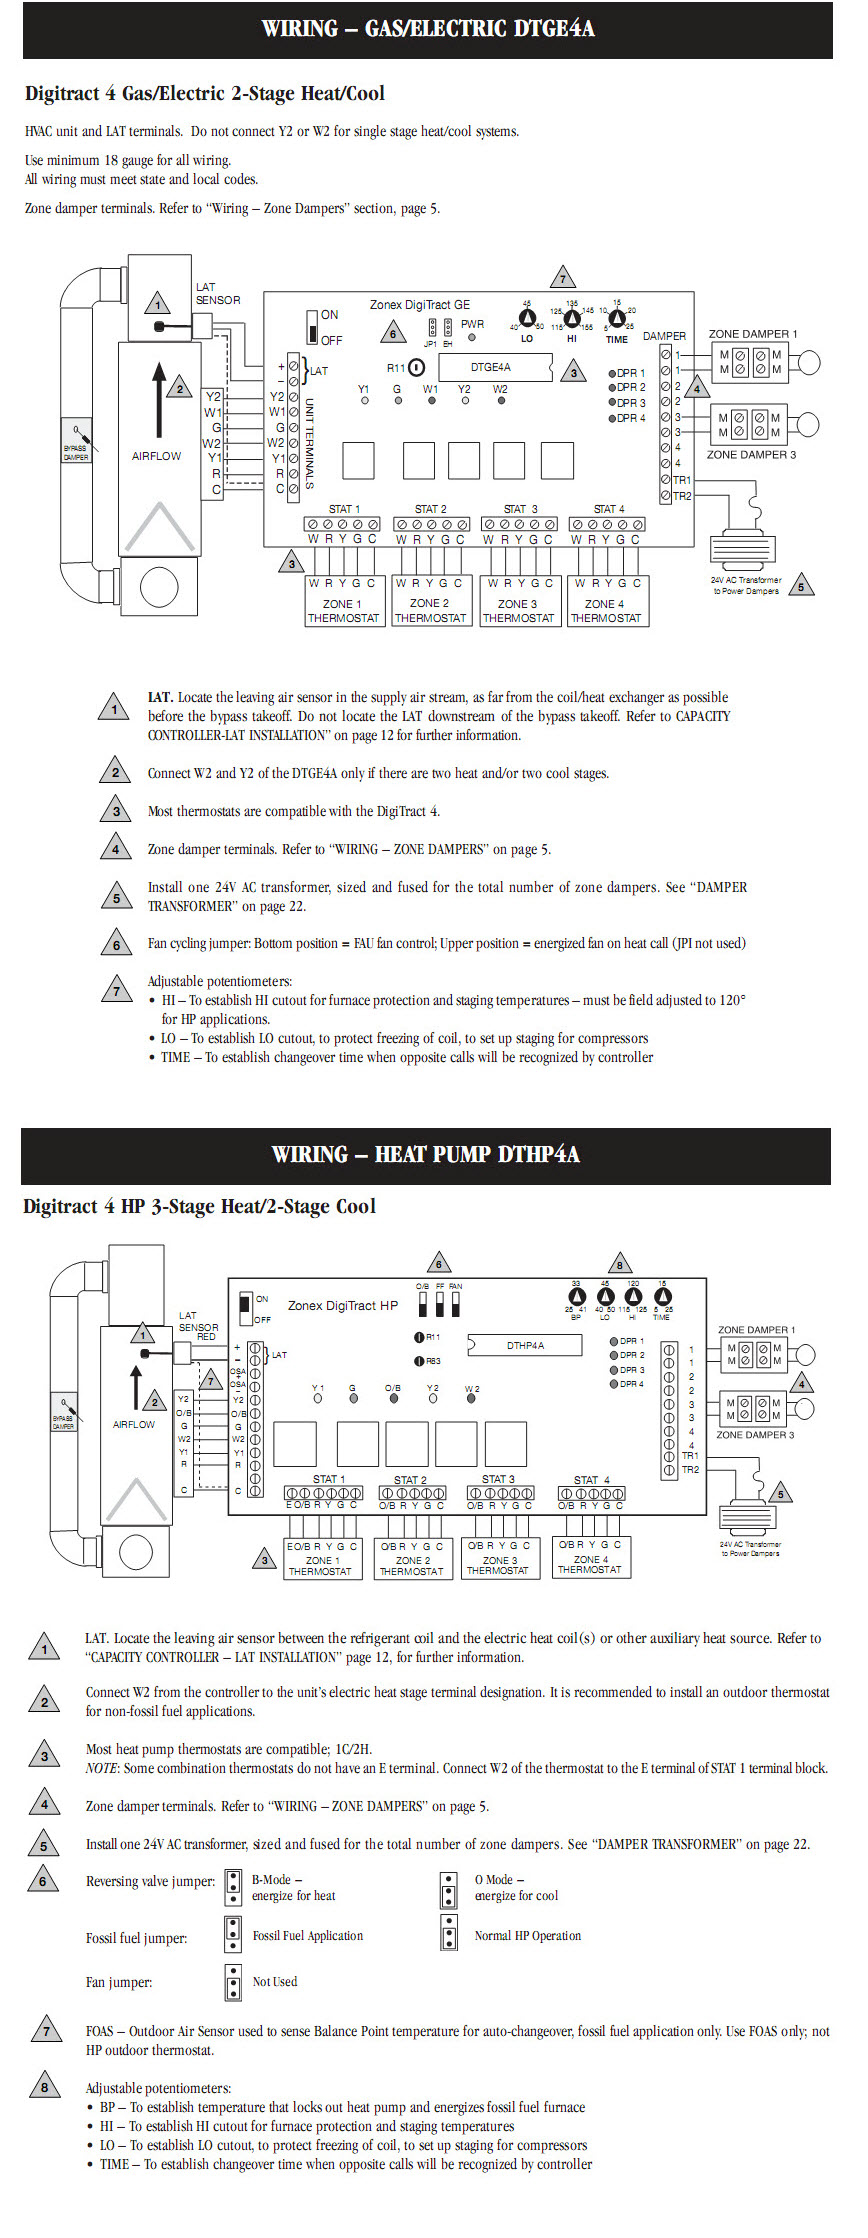 digitract4_wiring_schematics R Control Wiring Schematics on